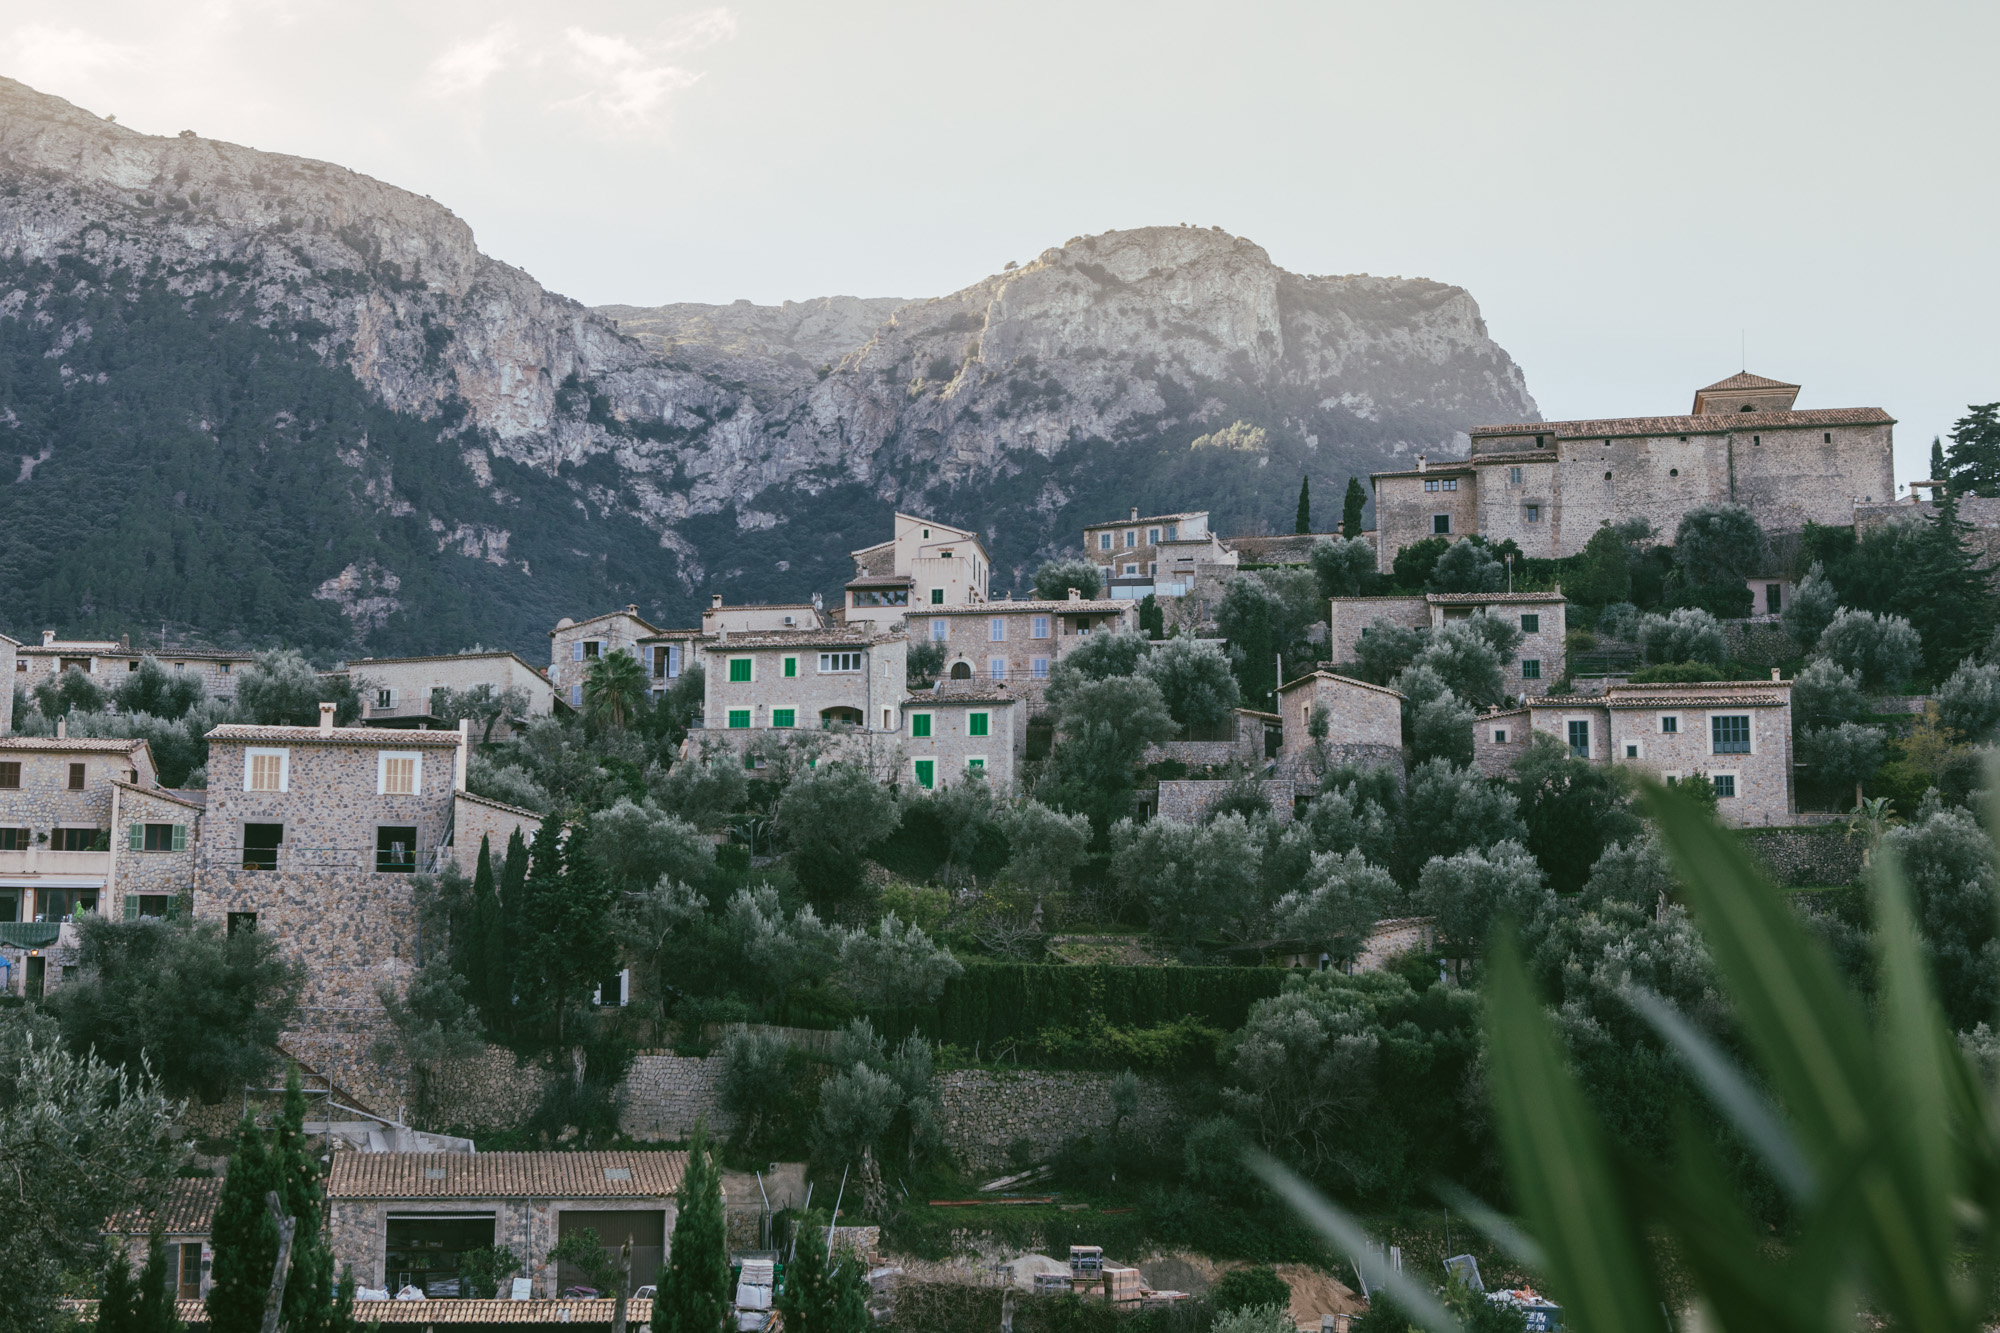 Another angle of part of Deia, just before the sun began to spill over.